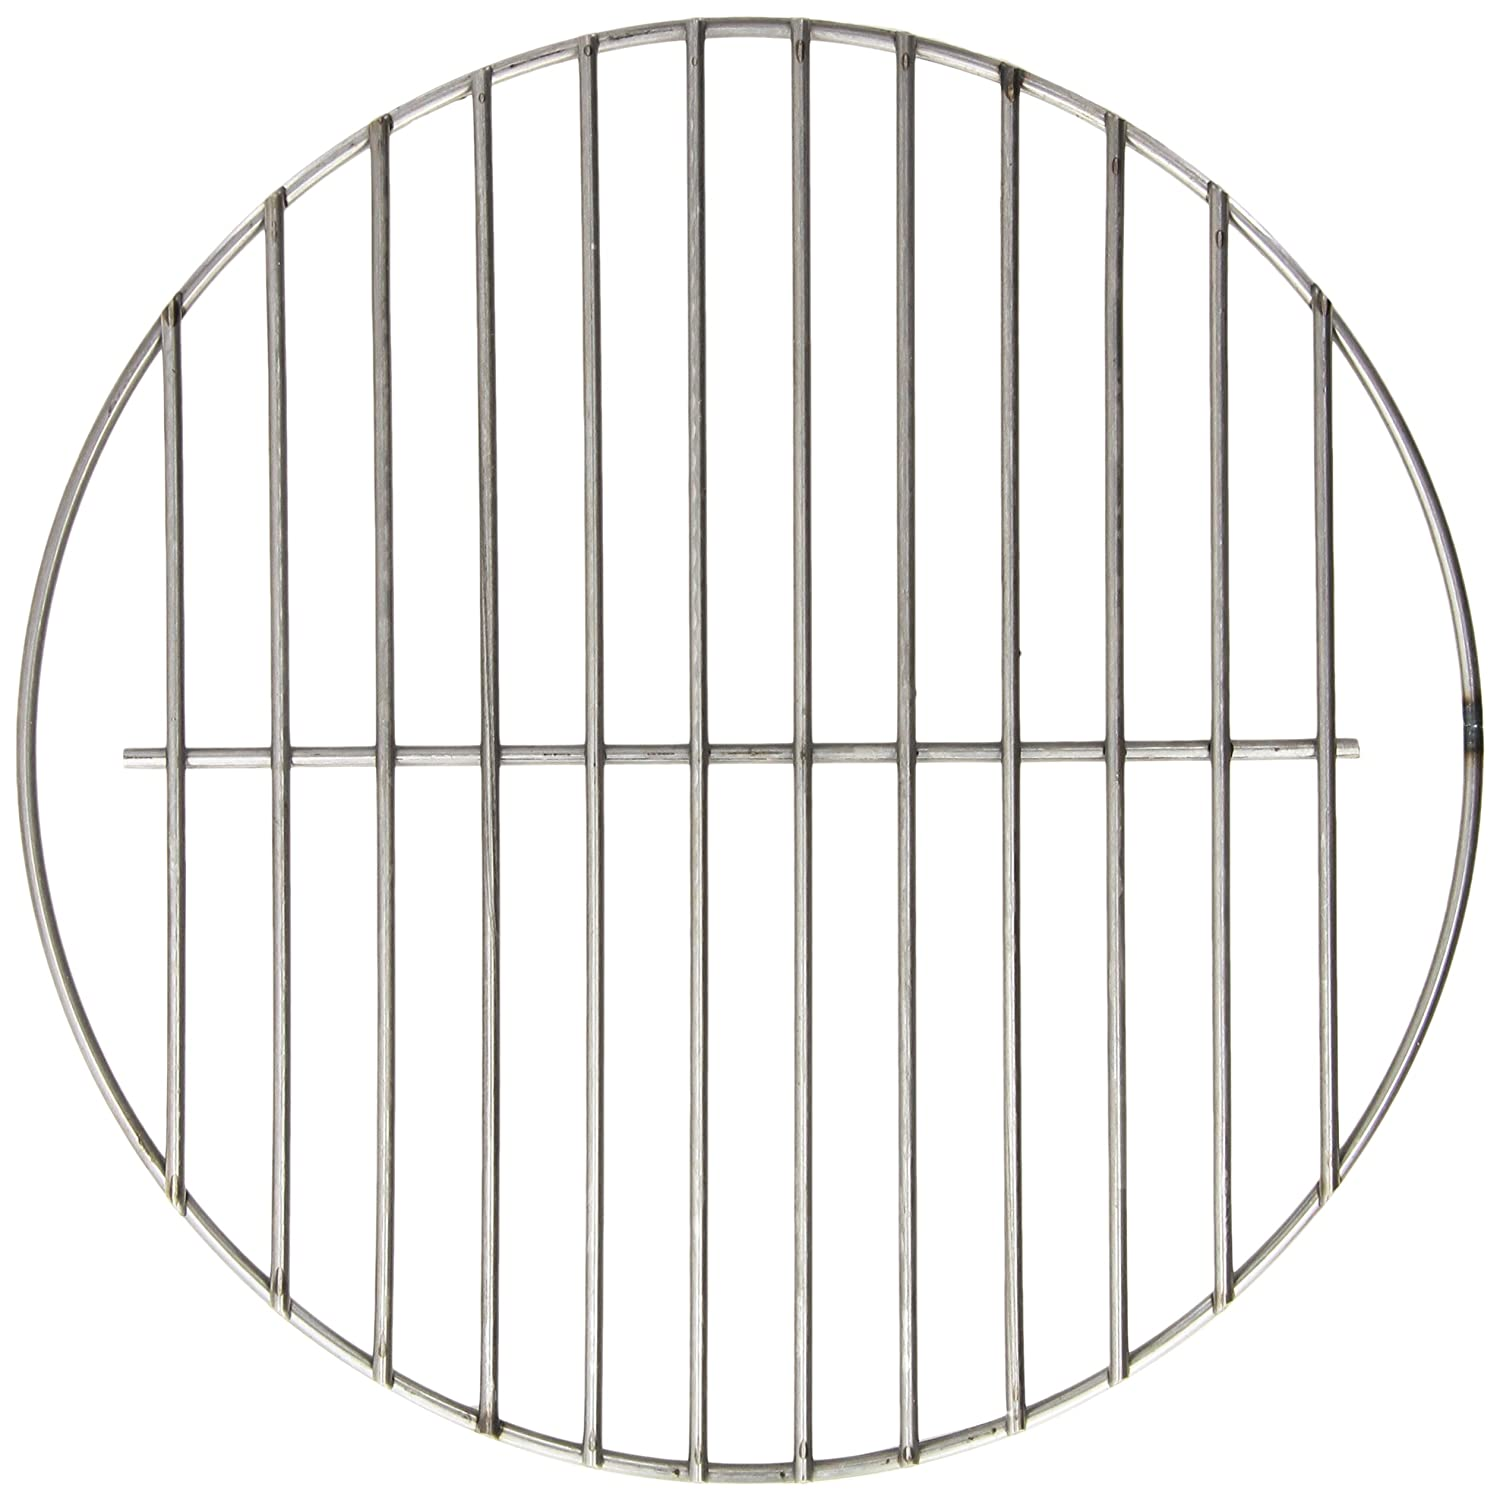 Weber 7439 Replacement Charcoal Grate